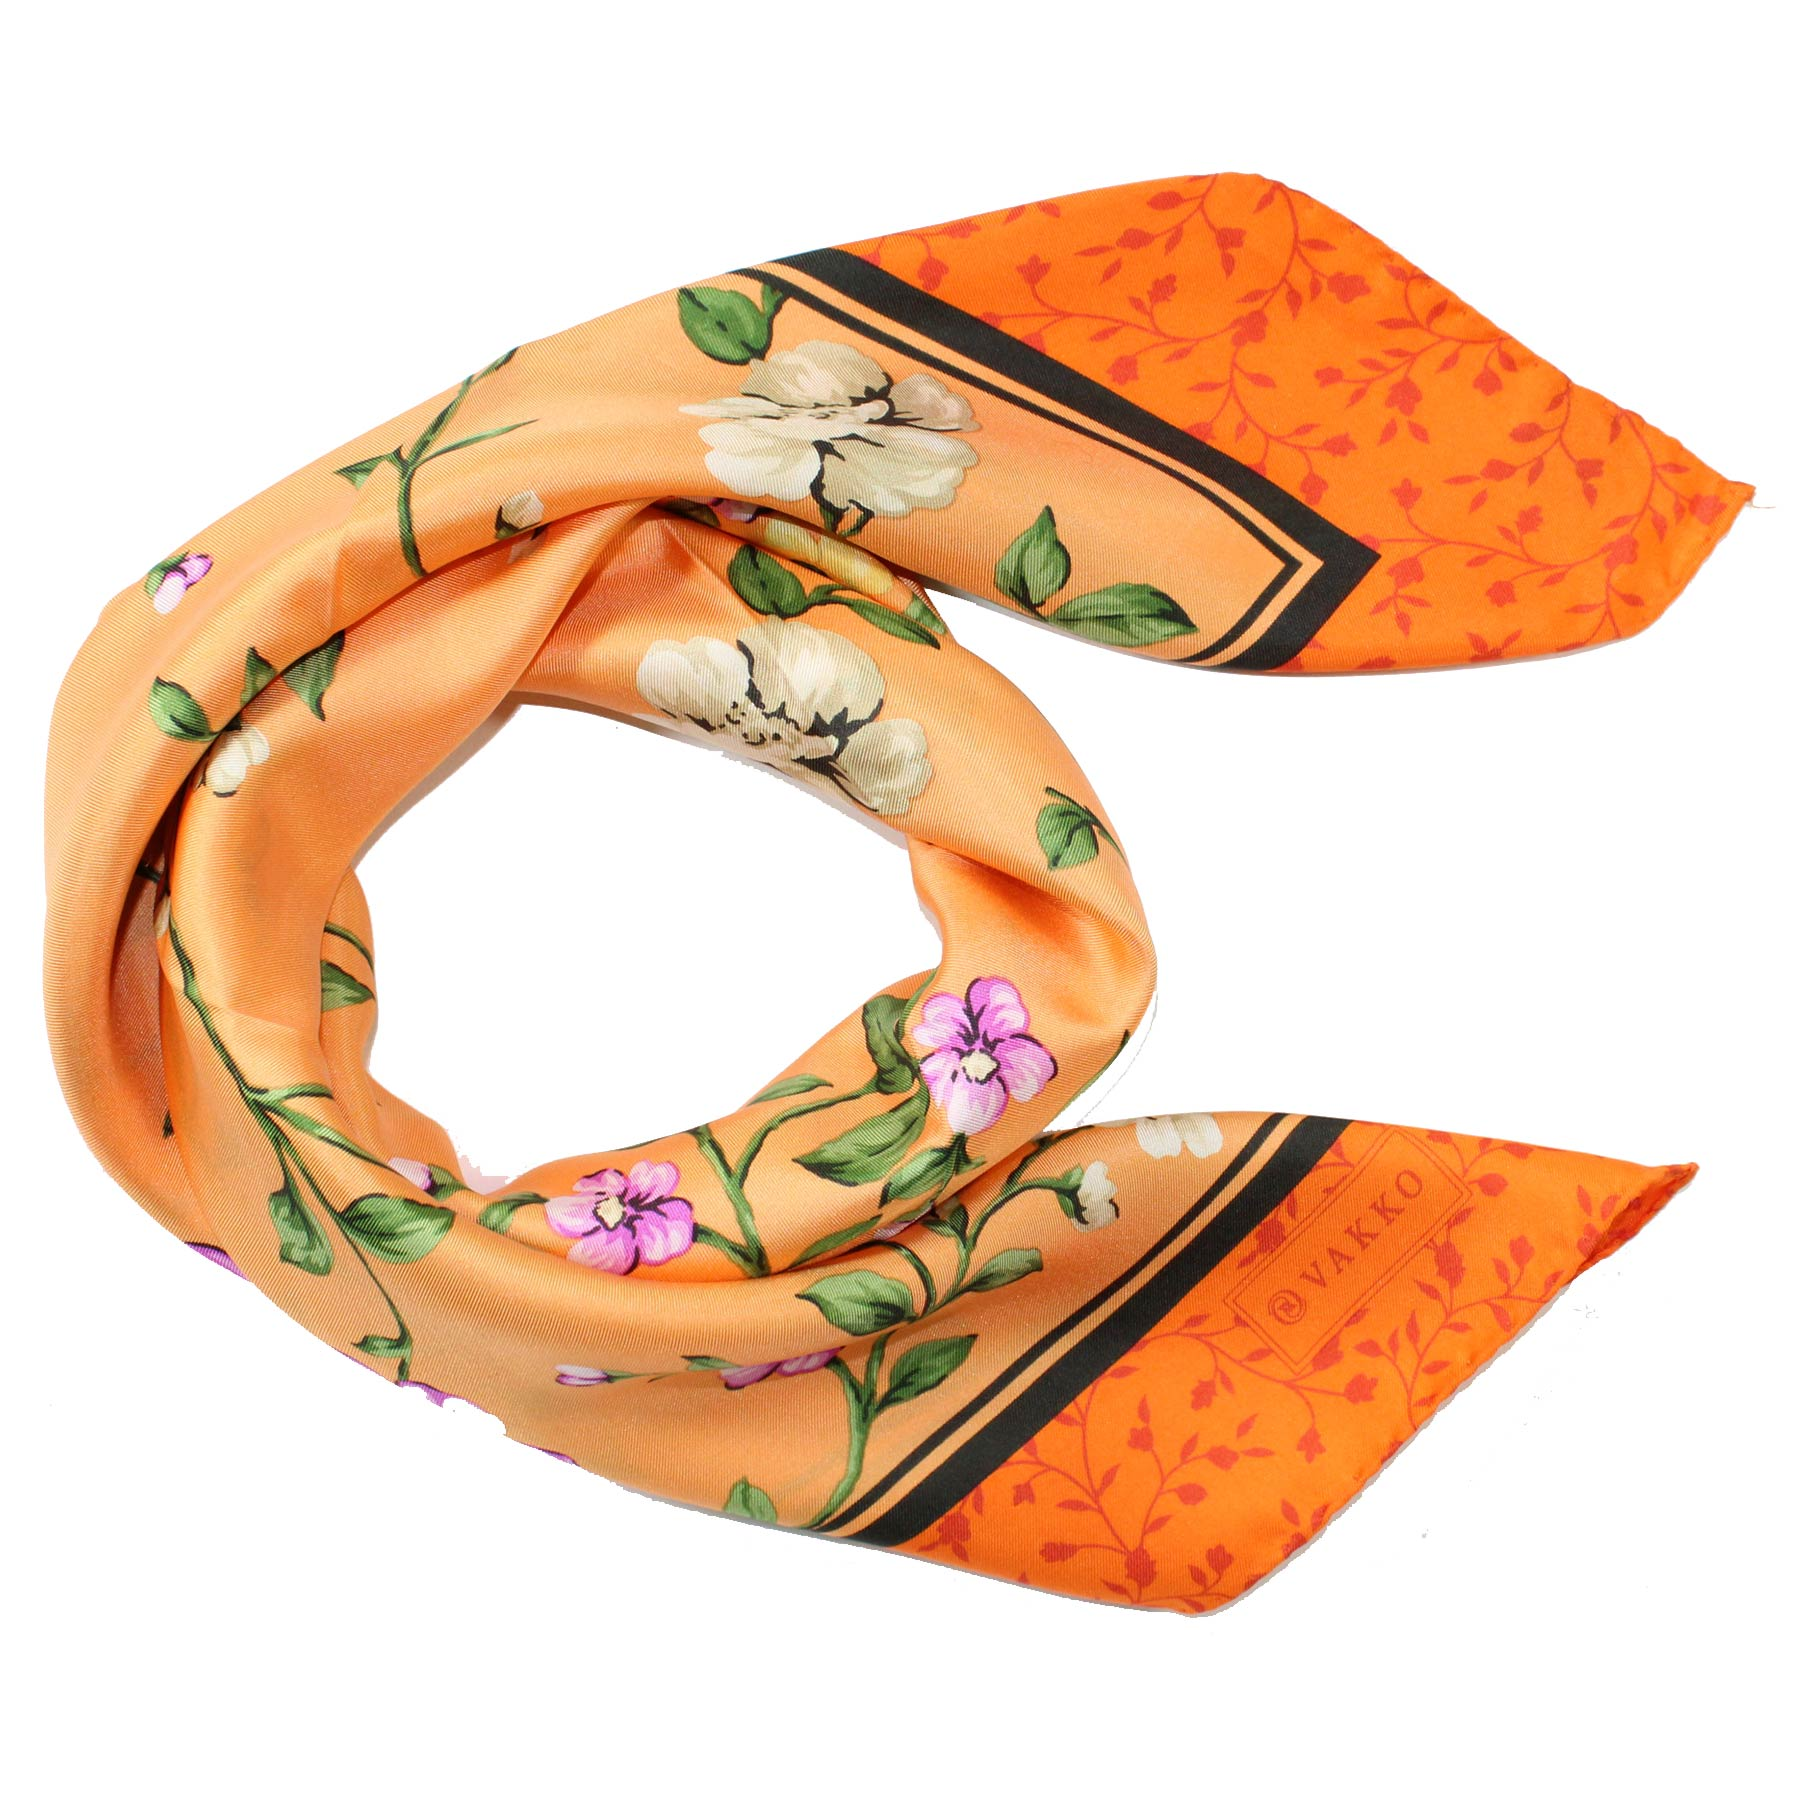 Vakko Scarf Orange Floral Design - Large Silk Square Scarf FINAL SALE